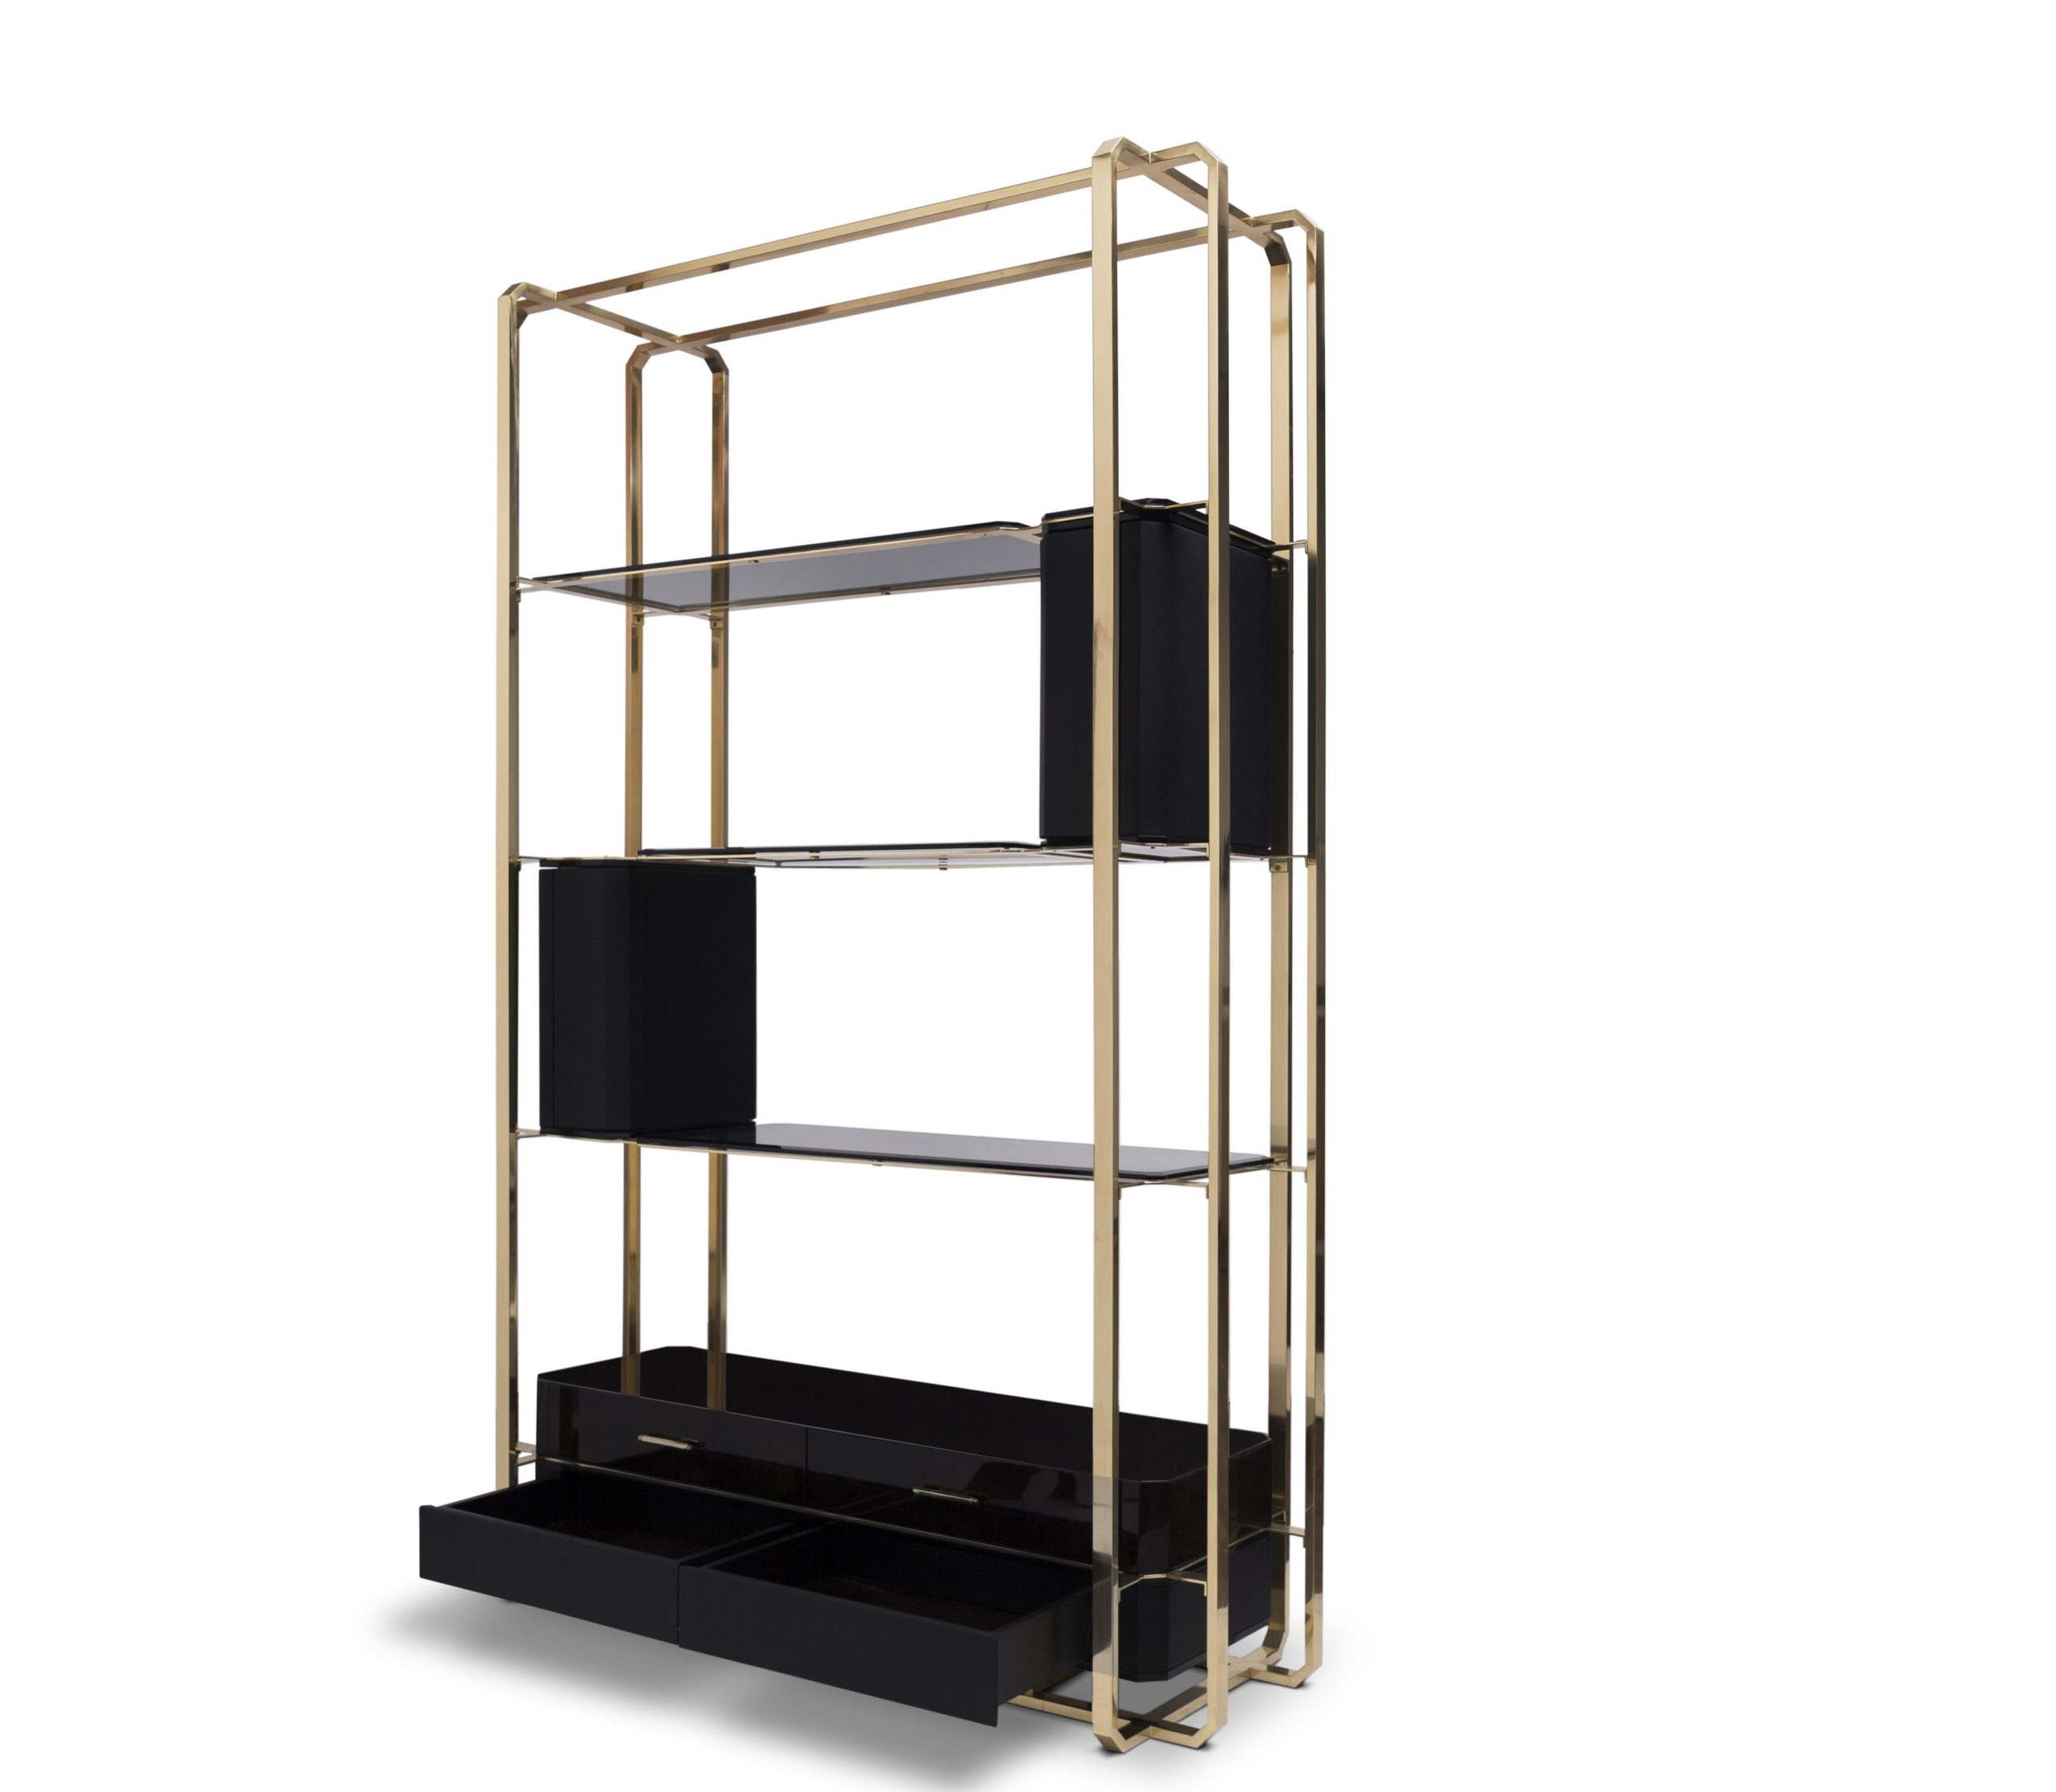 Home Office Design - Enrich Your Workspace With Luxxu´s Sophisticated Bookcases